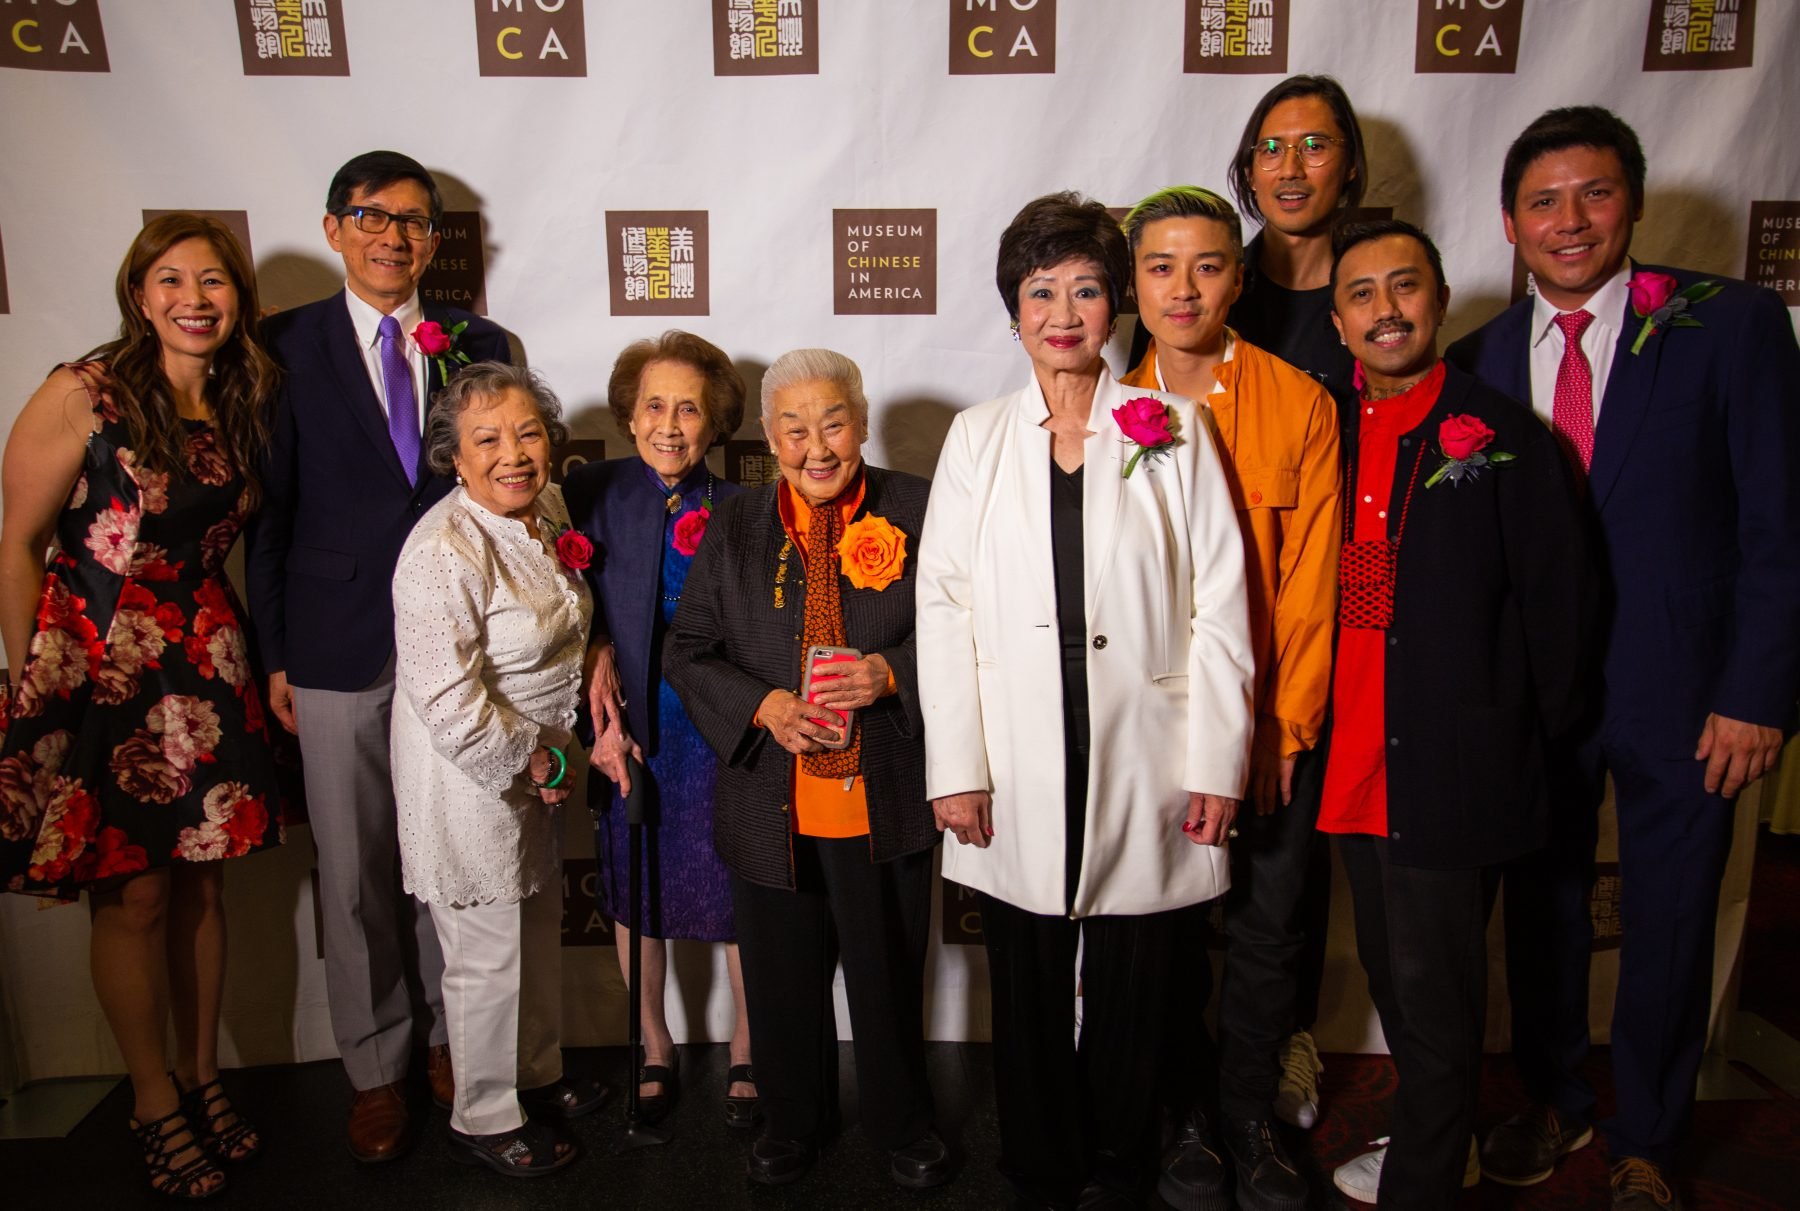 (L-R) Nancy Yao Maasbach, MOCA President; Wellington Chen, executive director of Chinatown Partnership; Marcella Chin Dear, Catherine Lee Young and Norma Chu of Ging Hawk Club; Margaret Lam, philanthropist; Stevie Huynh, Nicholas Anderson and Pedro Vidallon of Bubble_T; Jonathan Chu, MOCA Board co-chair